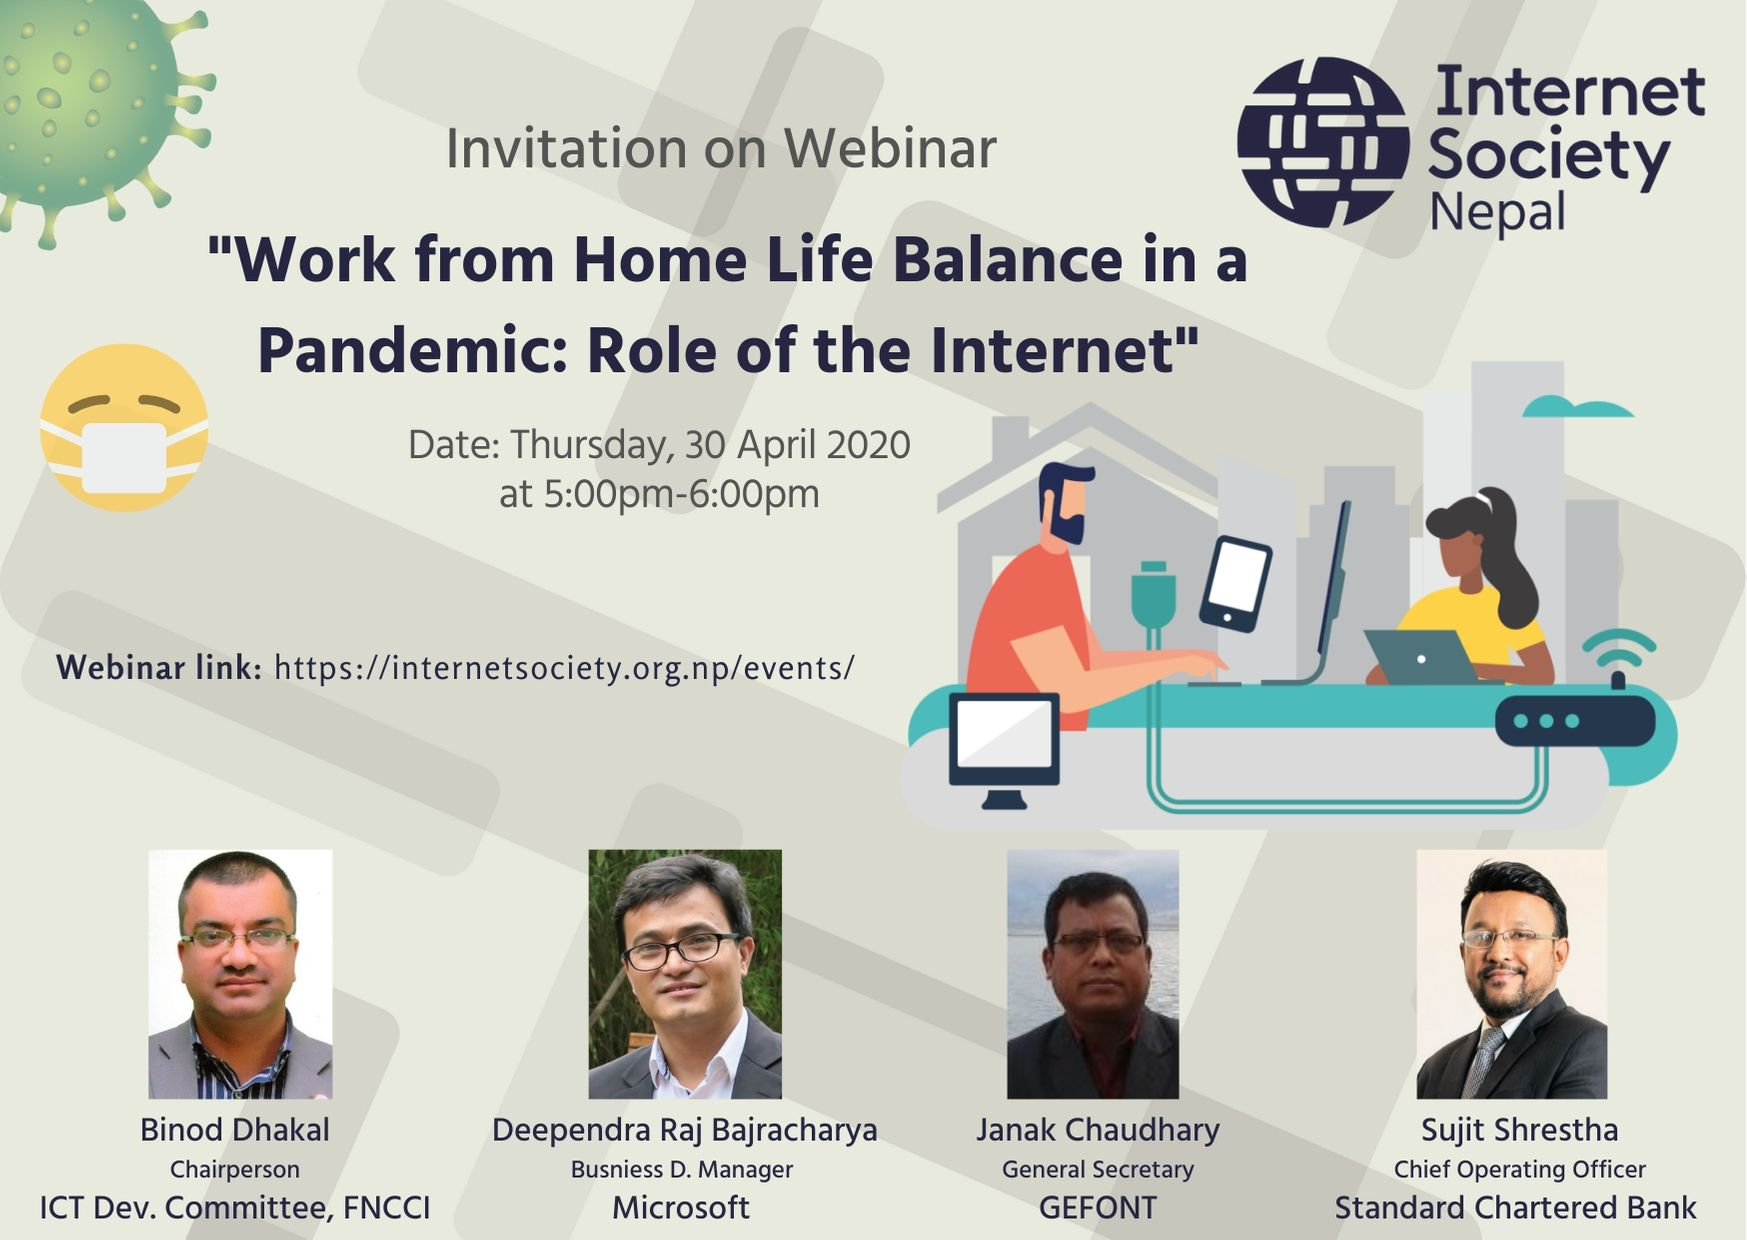 Work Form Home Life Balance in a Pandemic: Role of the Internet